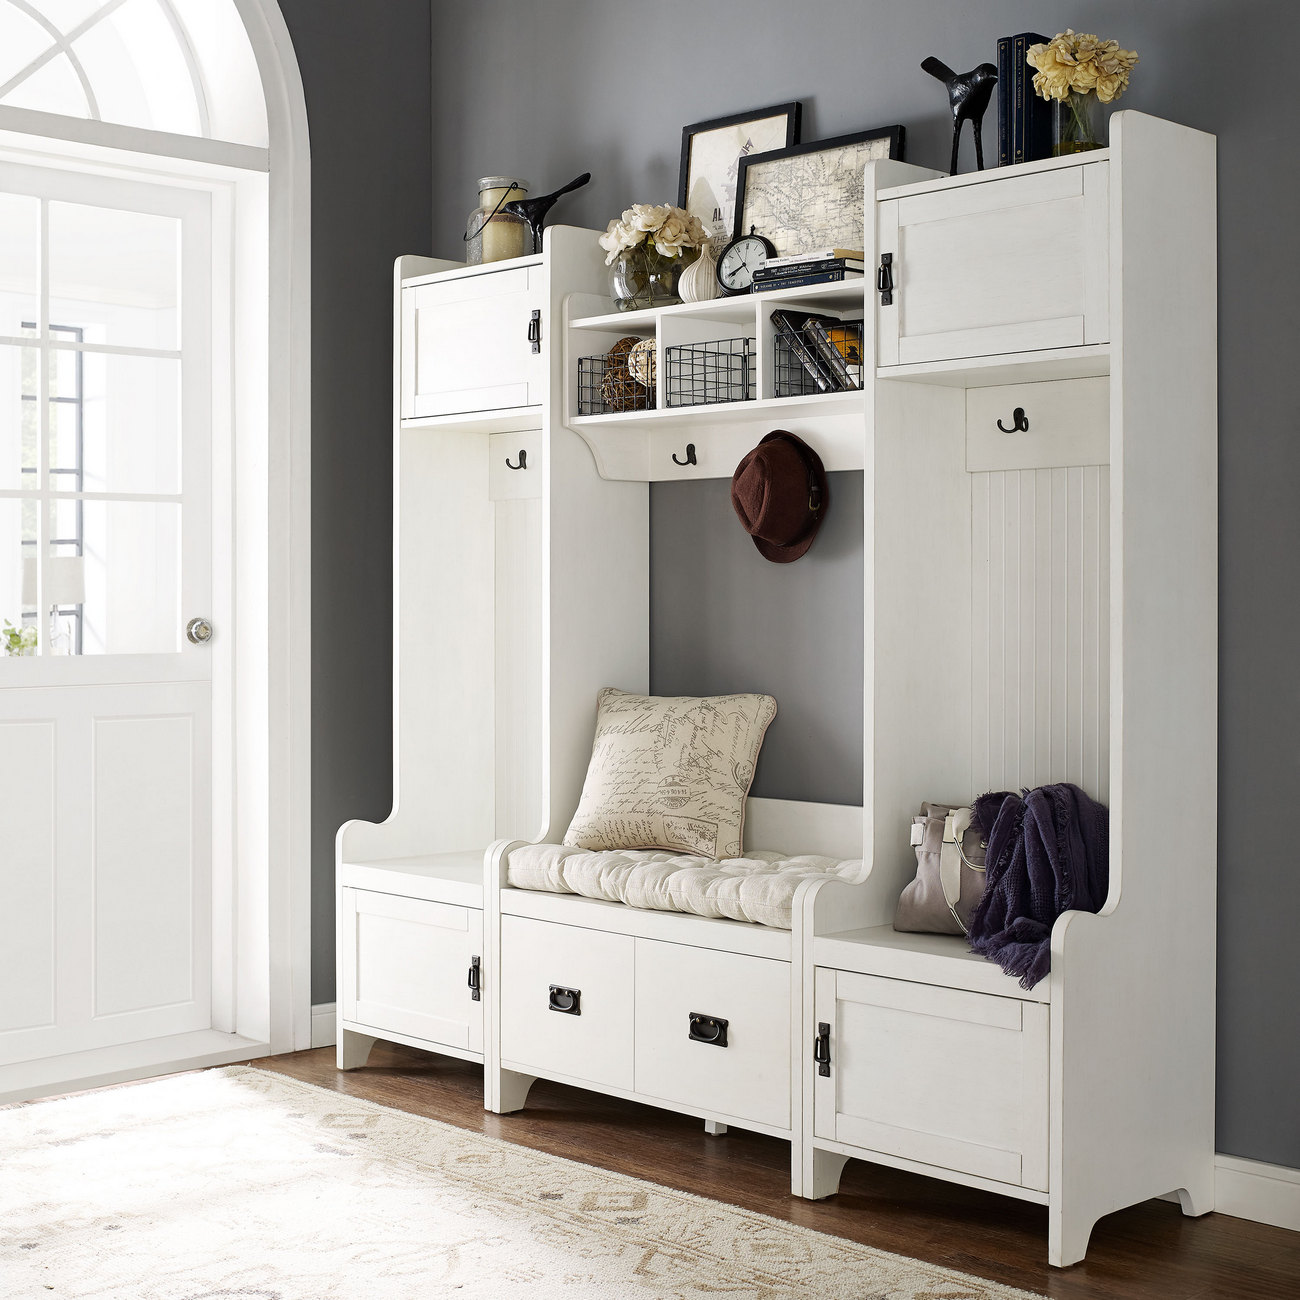 Crosley Fremont Entryway Kit Two Towers Bench Shelf White